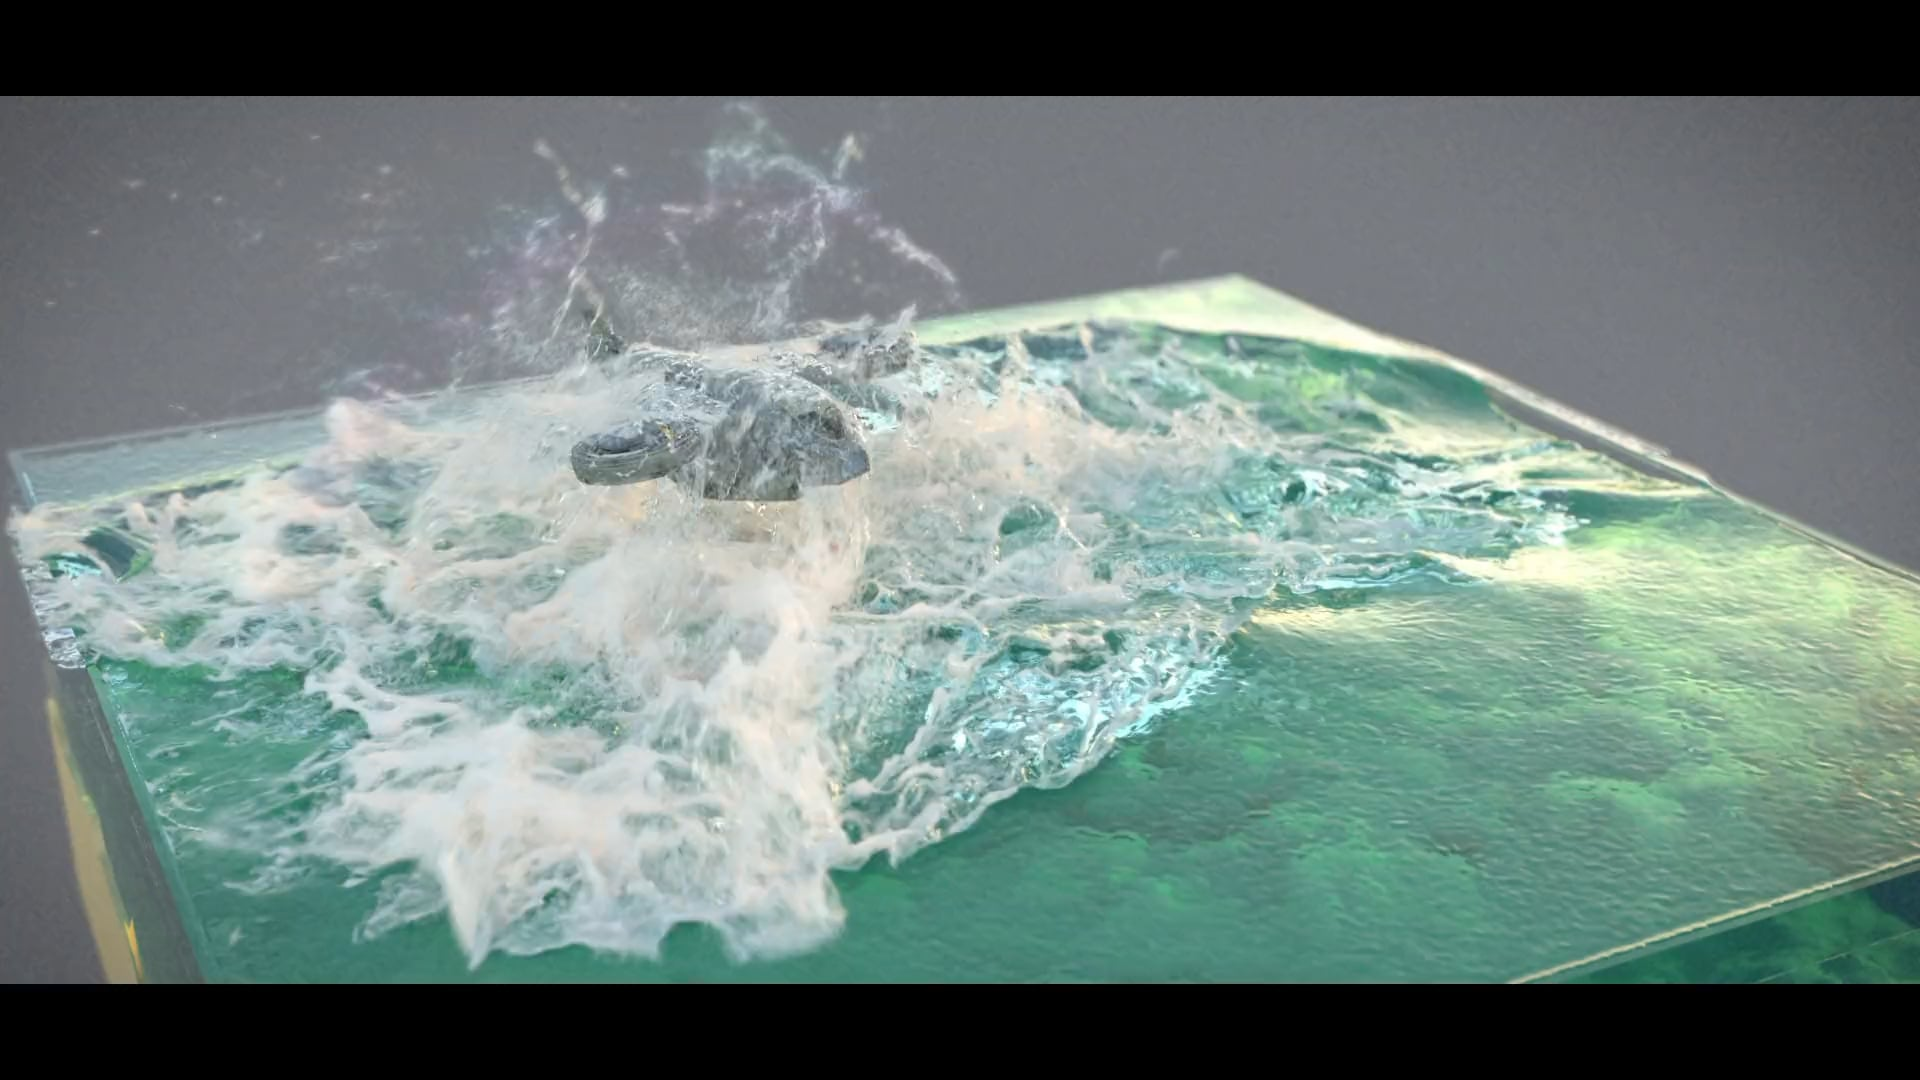 Emerging Drone with 3ds Max fluid solver